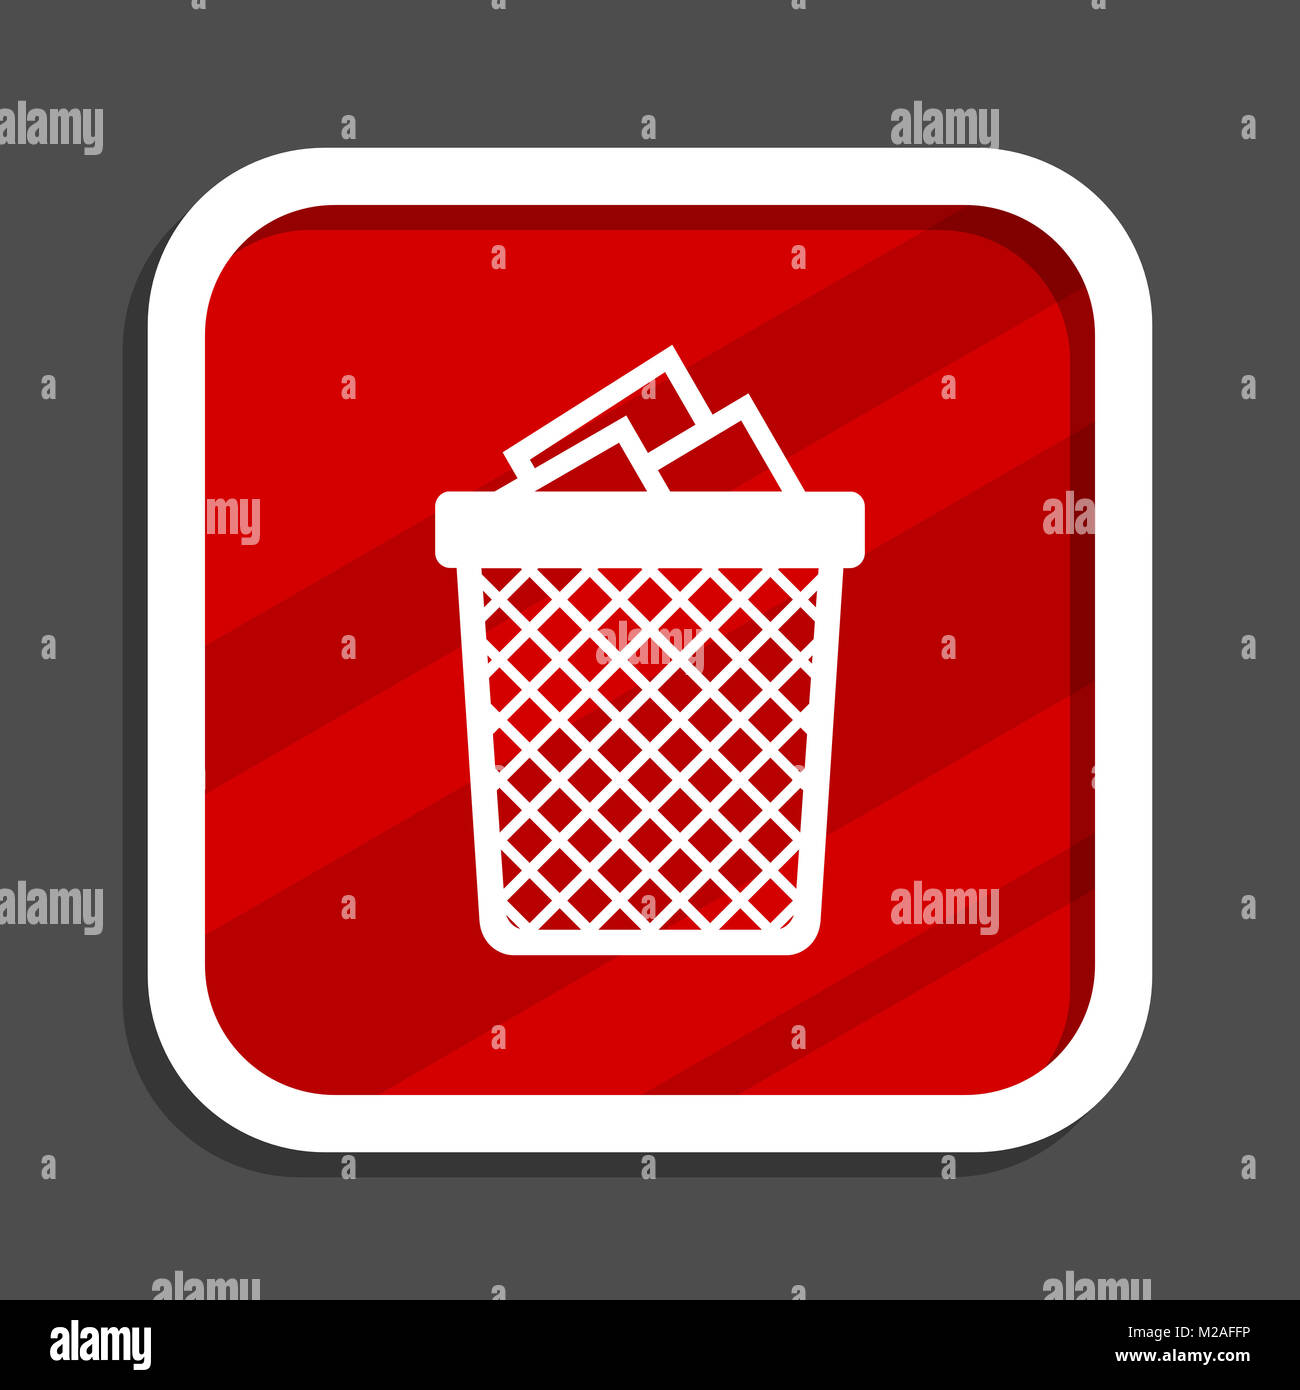 Trash can icon. Flat design square internet banner. - Stock Image